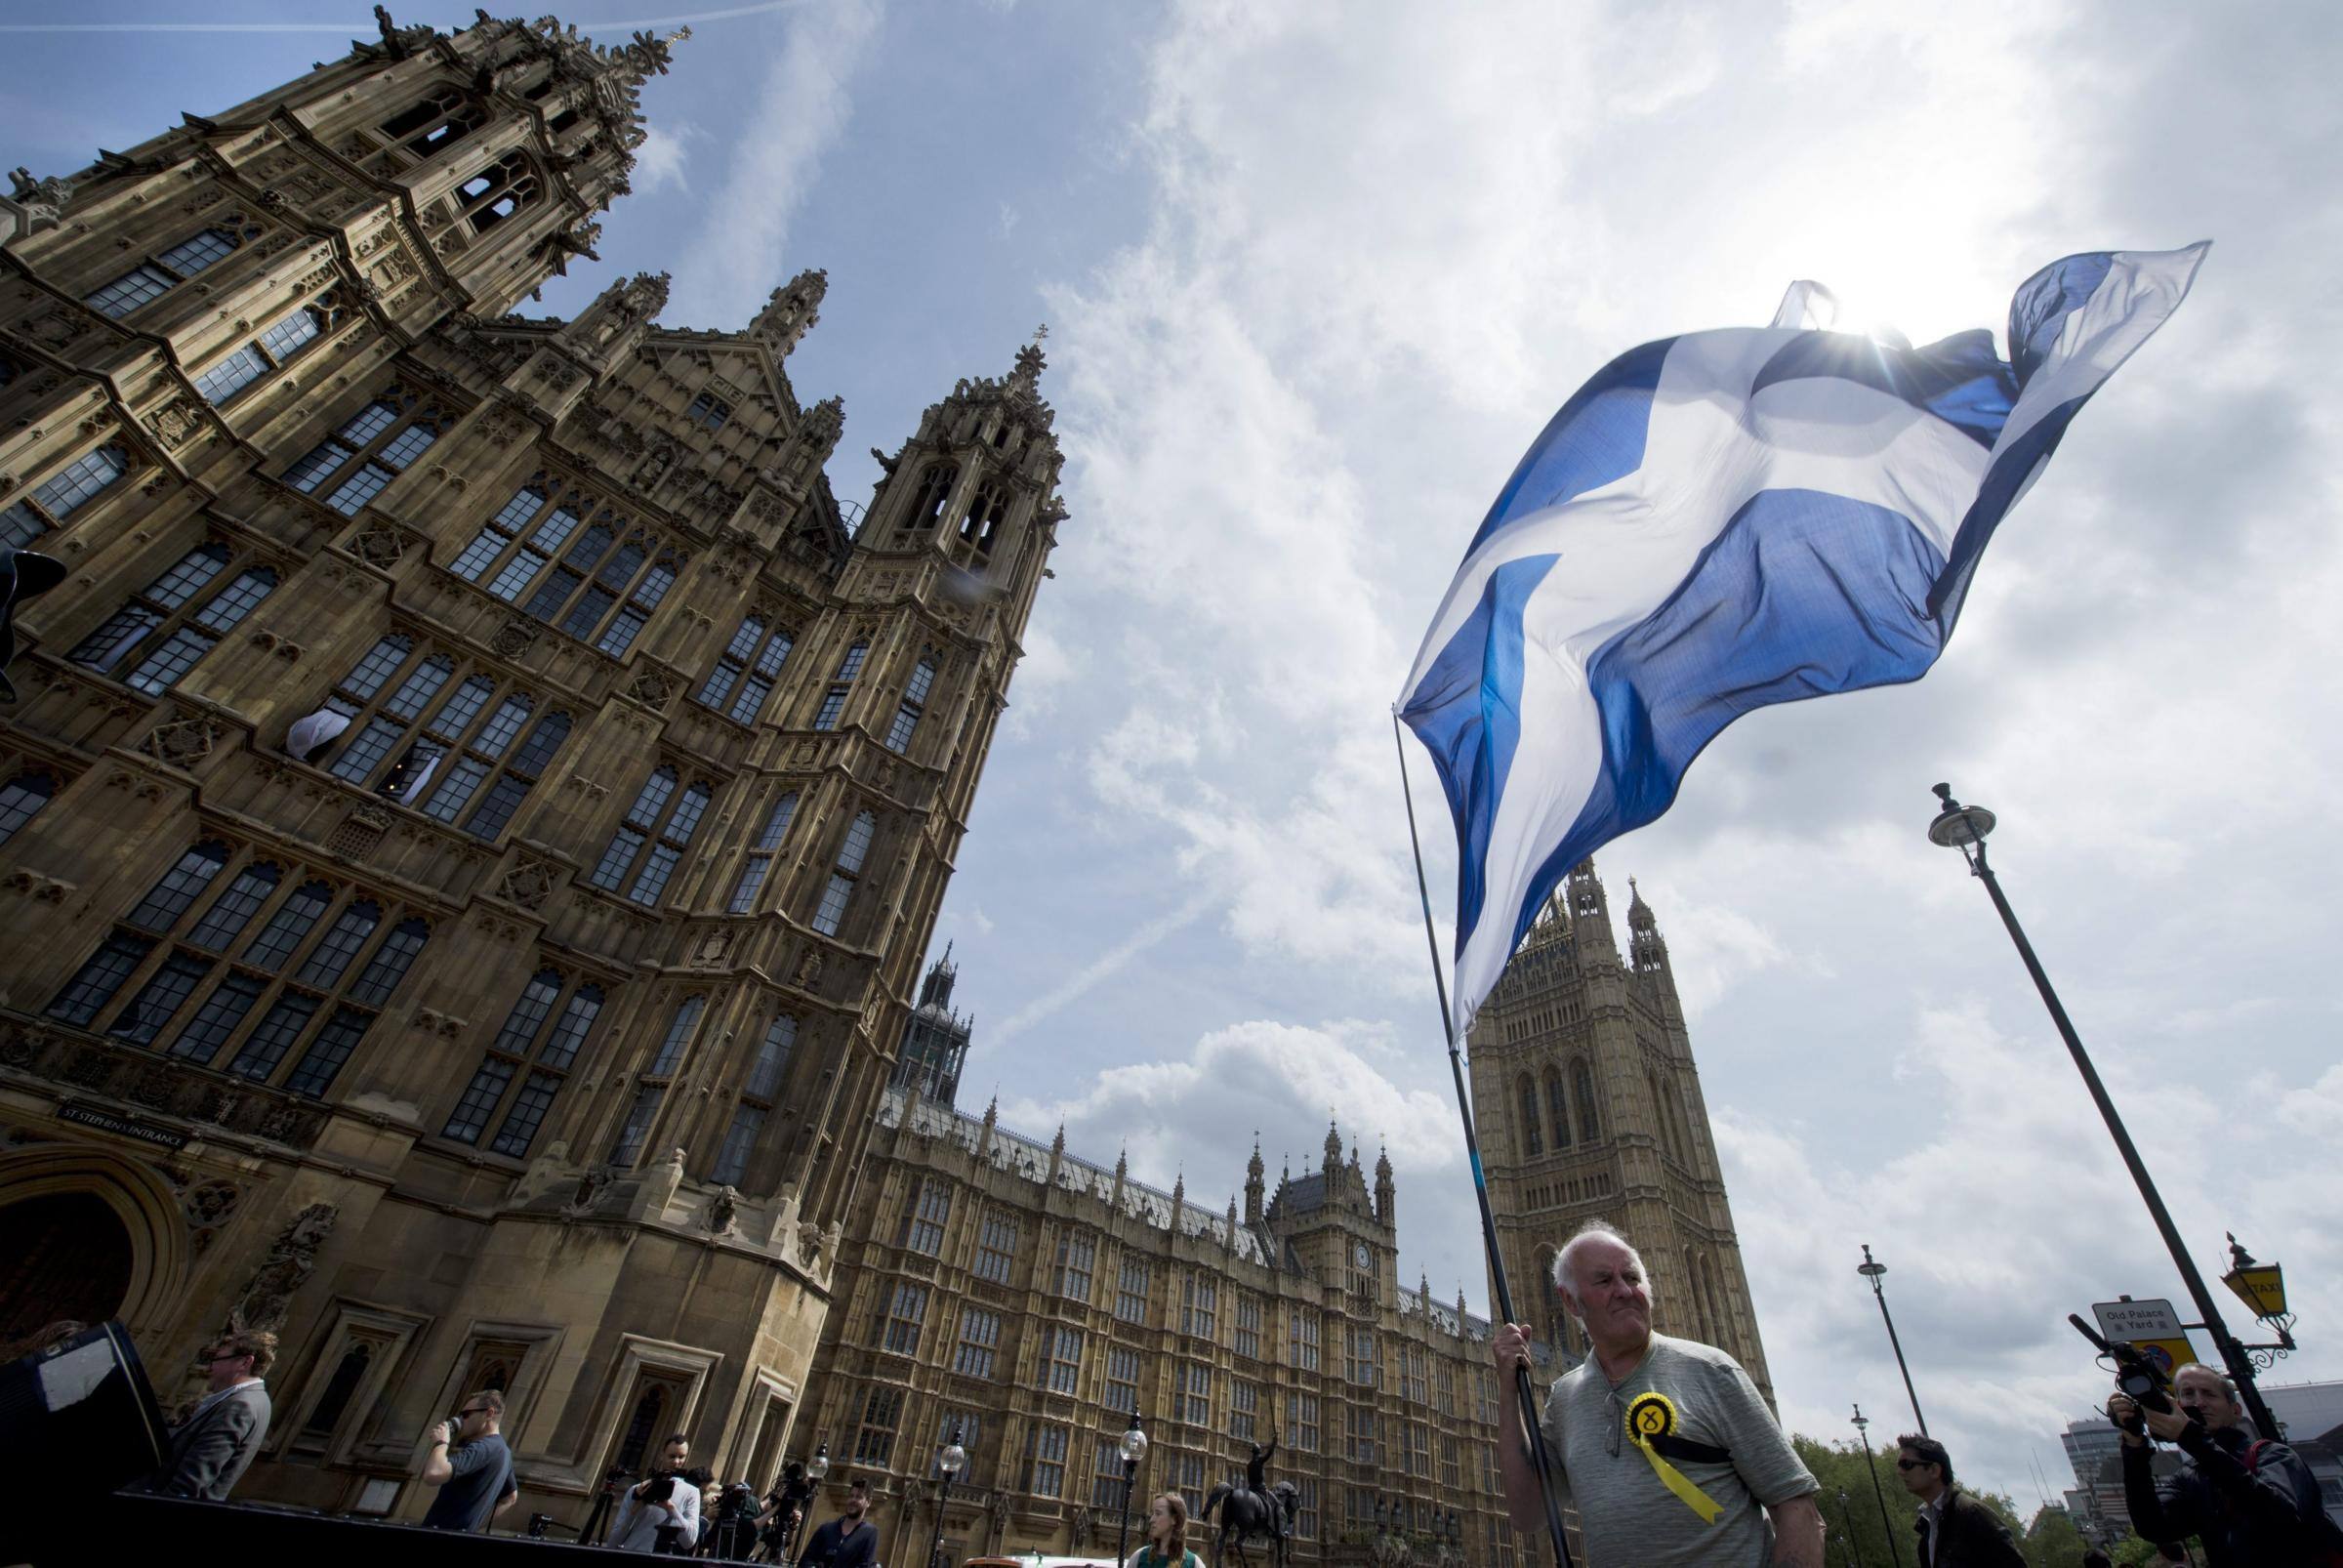 Scottish taxes will help pay for the renovation of the Palace of Westminster